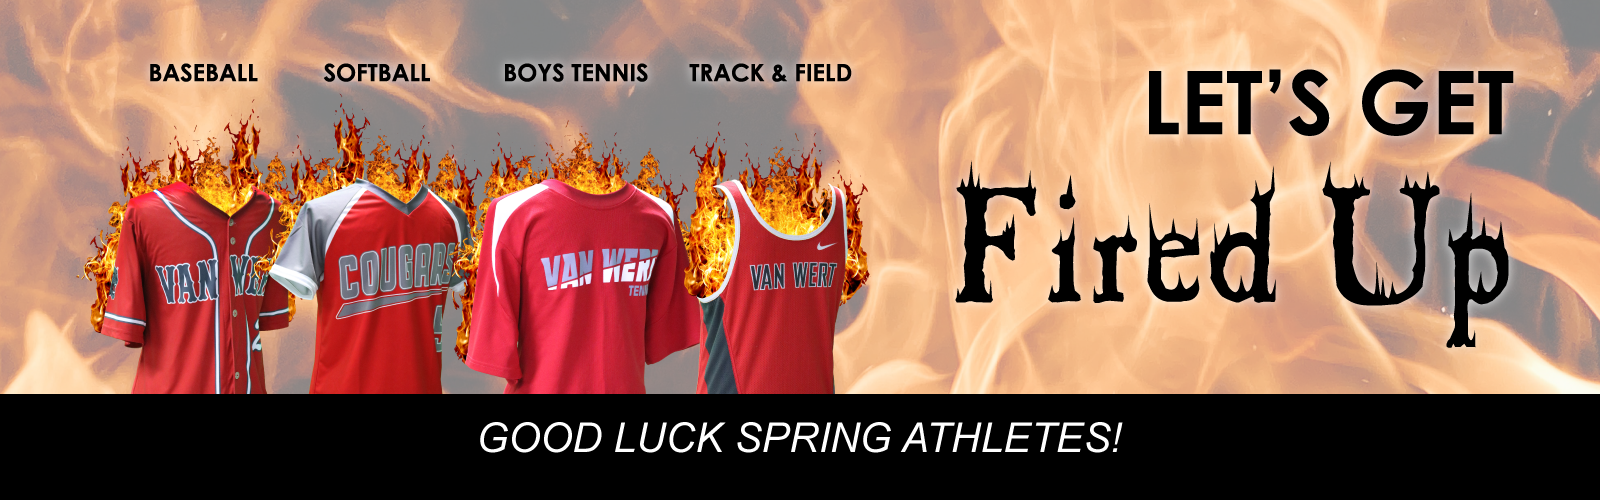 Let's get fired up, good luck spring athletes with images of baseball, softball, boys tennis and track uniforms